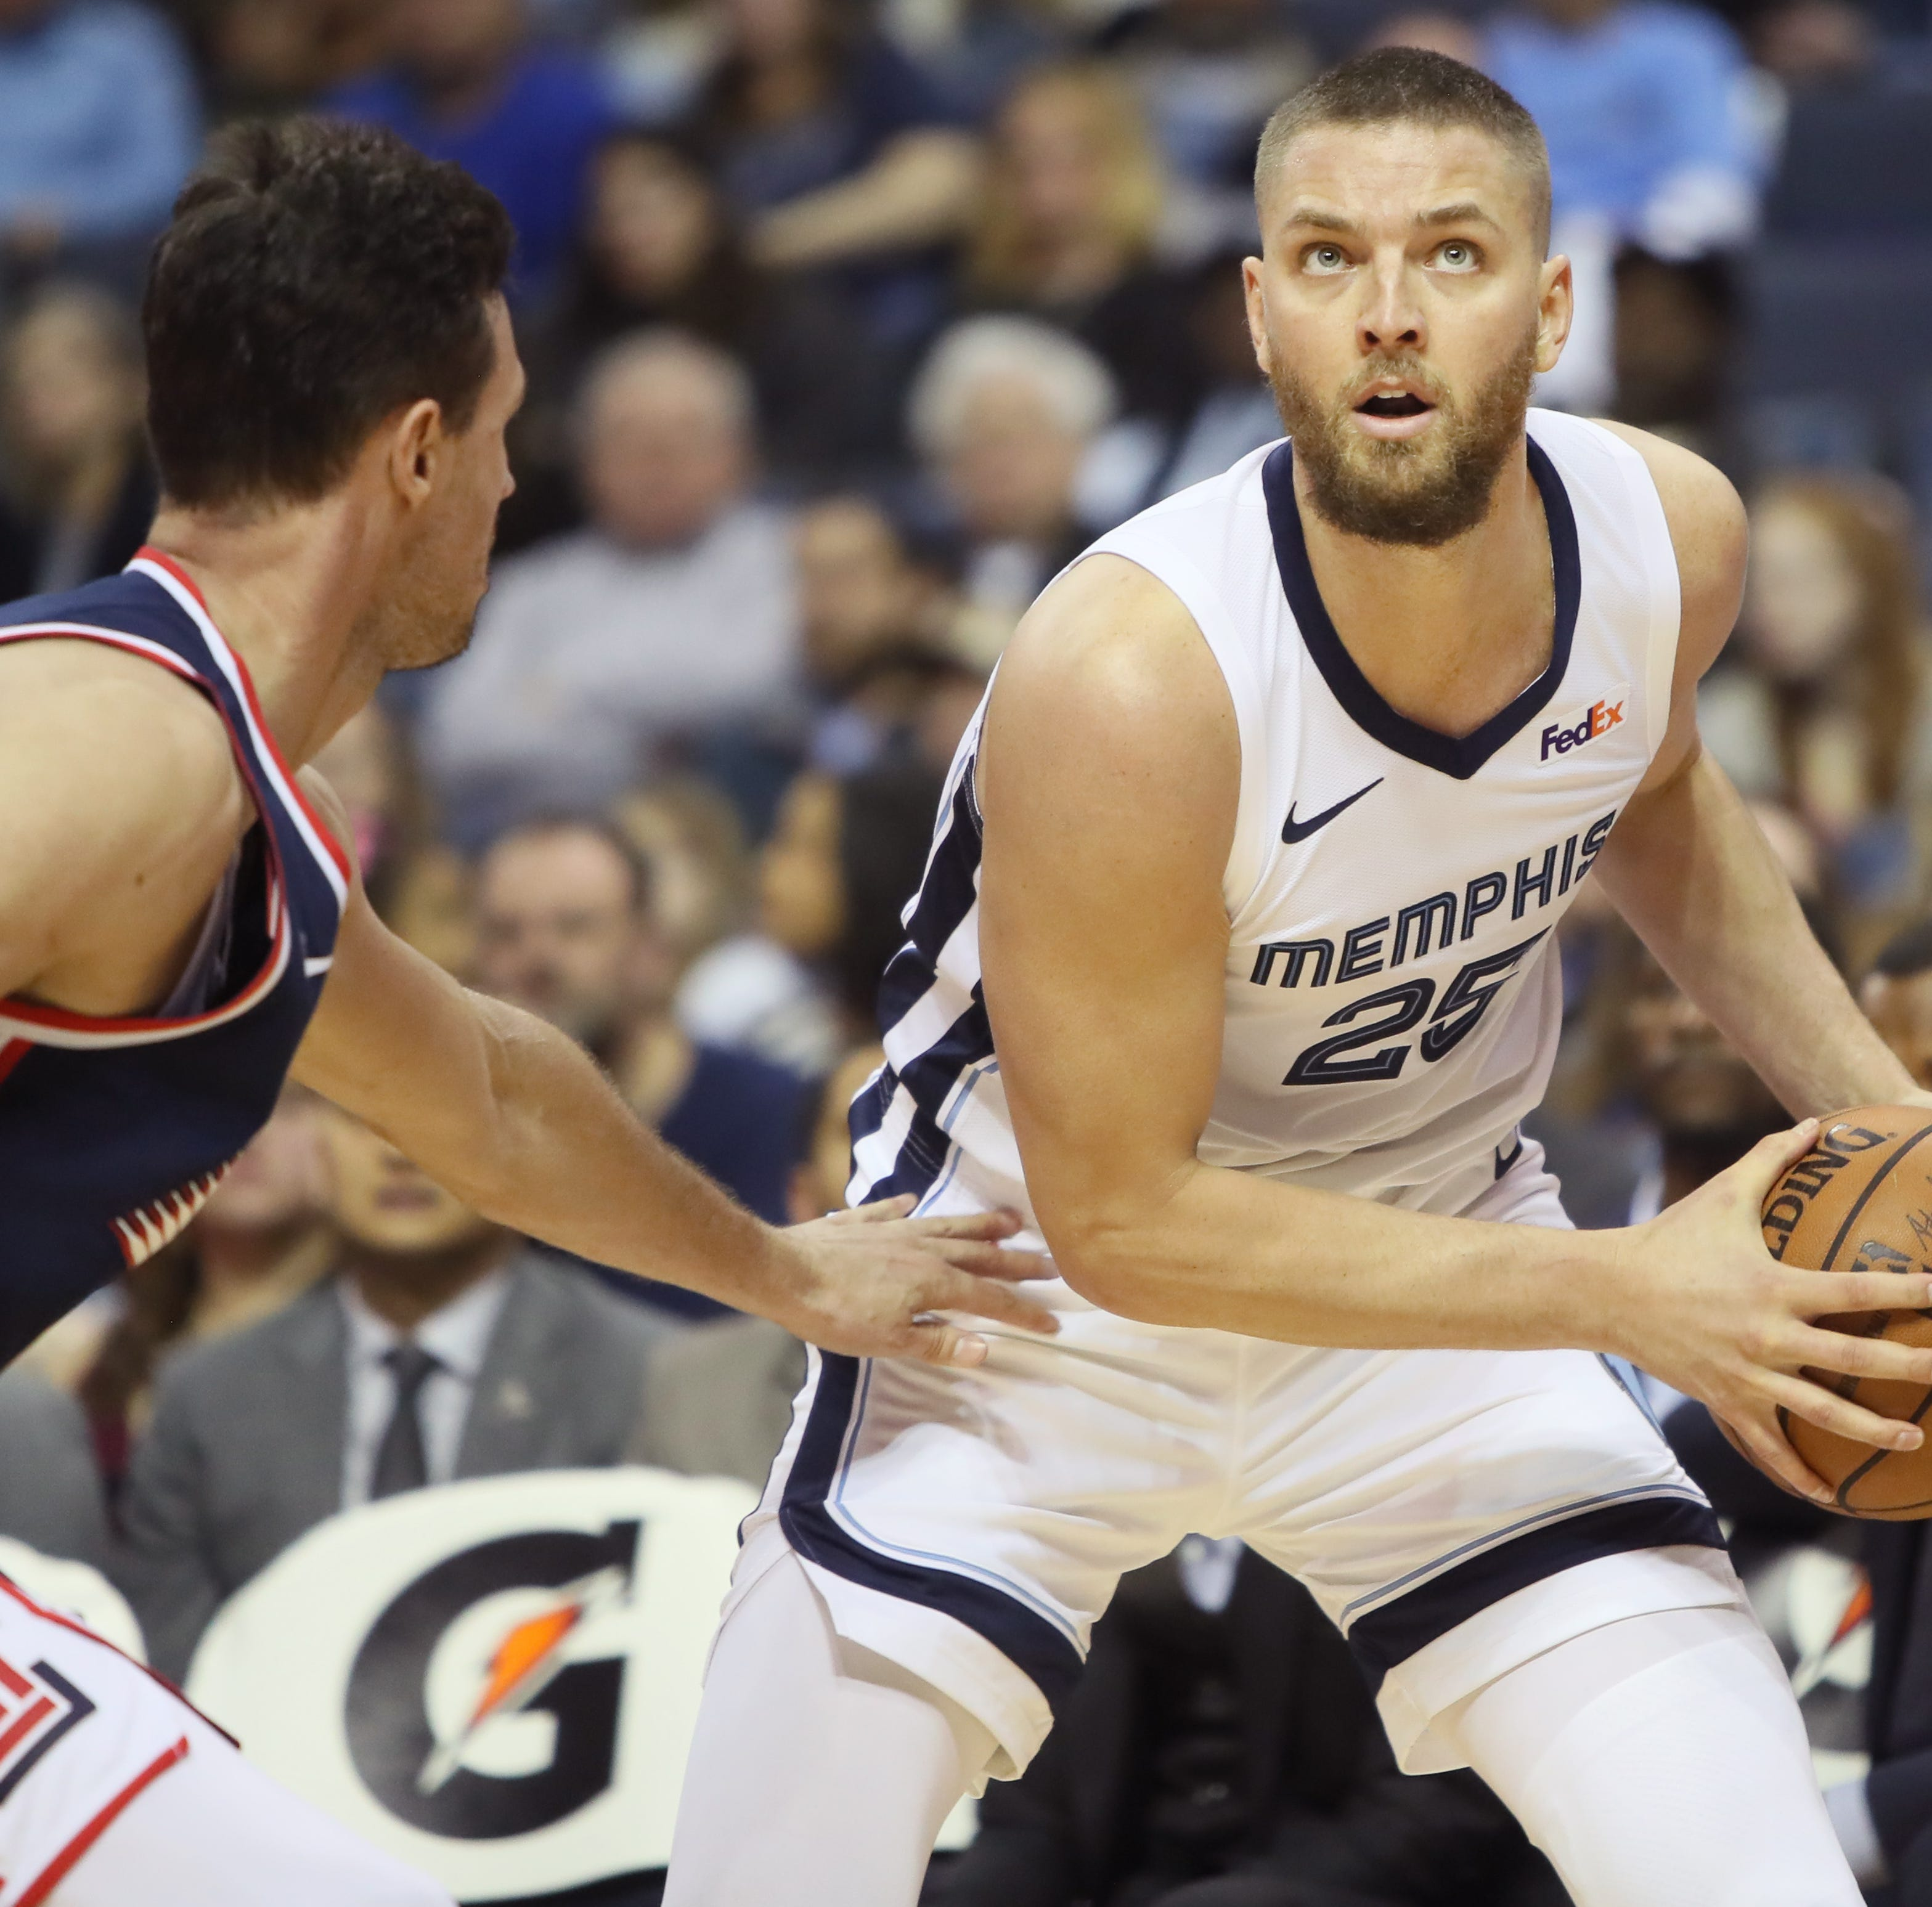 Chandler Parsons evaluates first game back with Memphis Grizzlies